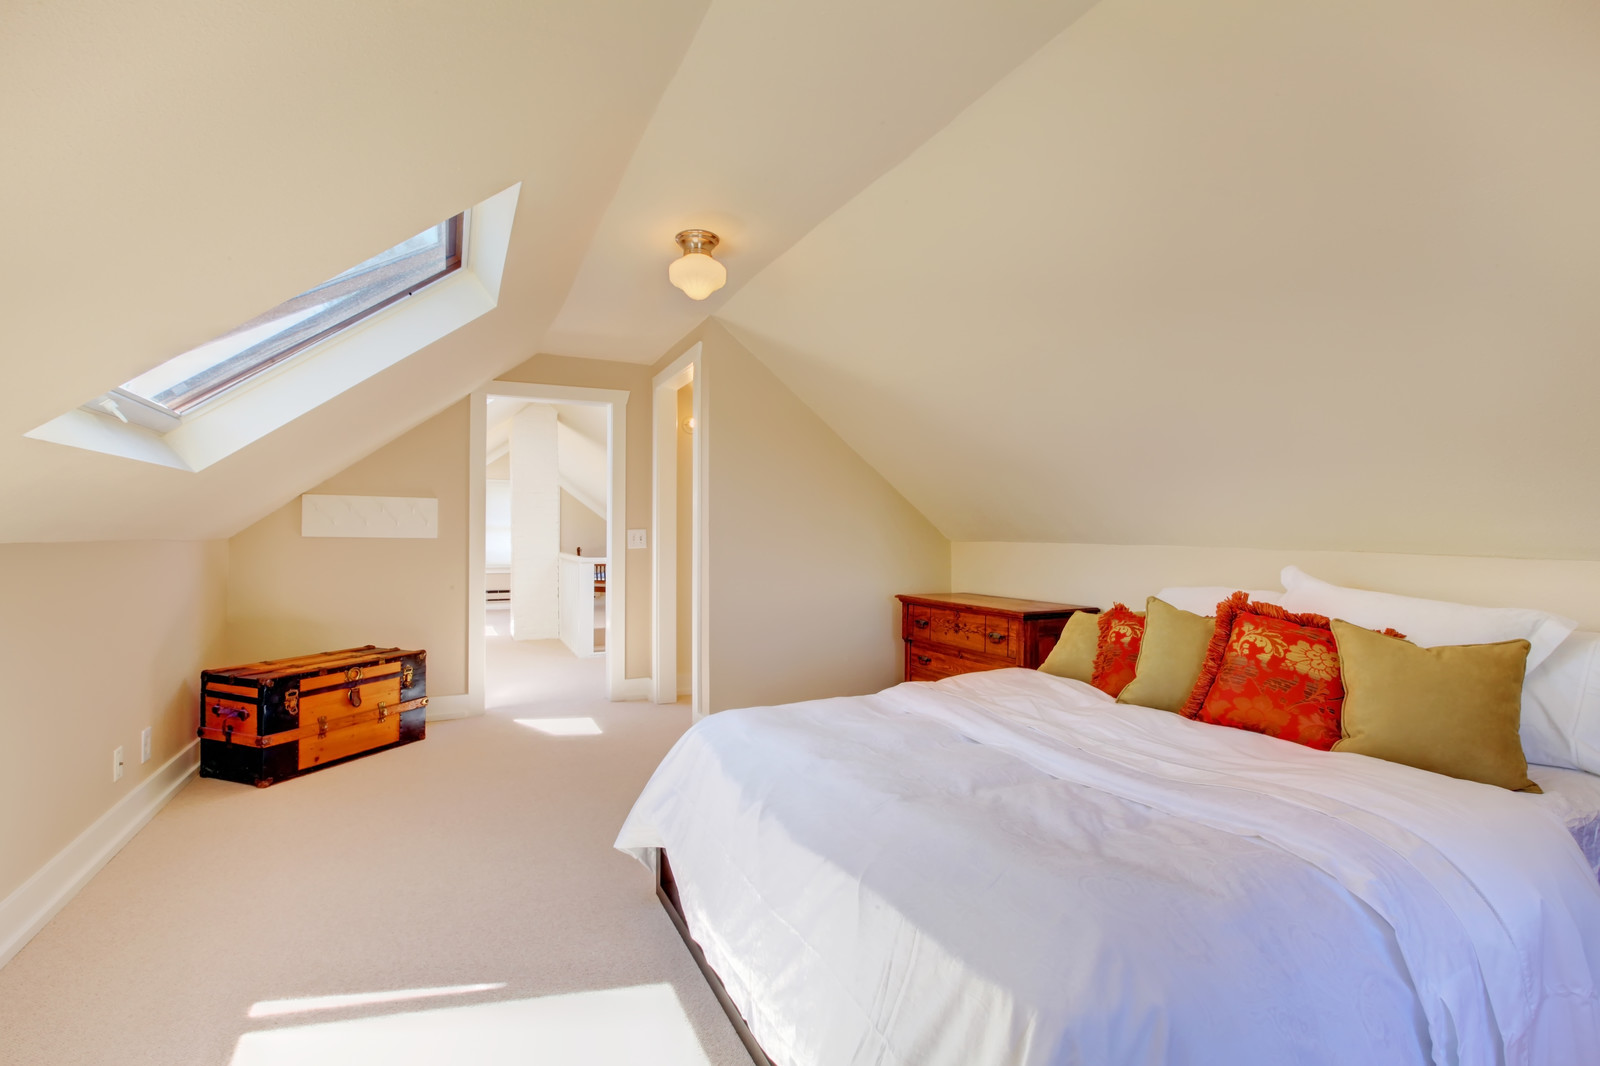 bright clean dormer loft conversion bedroom in the decent size home with beige carpet -ace lofts london ltd